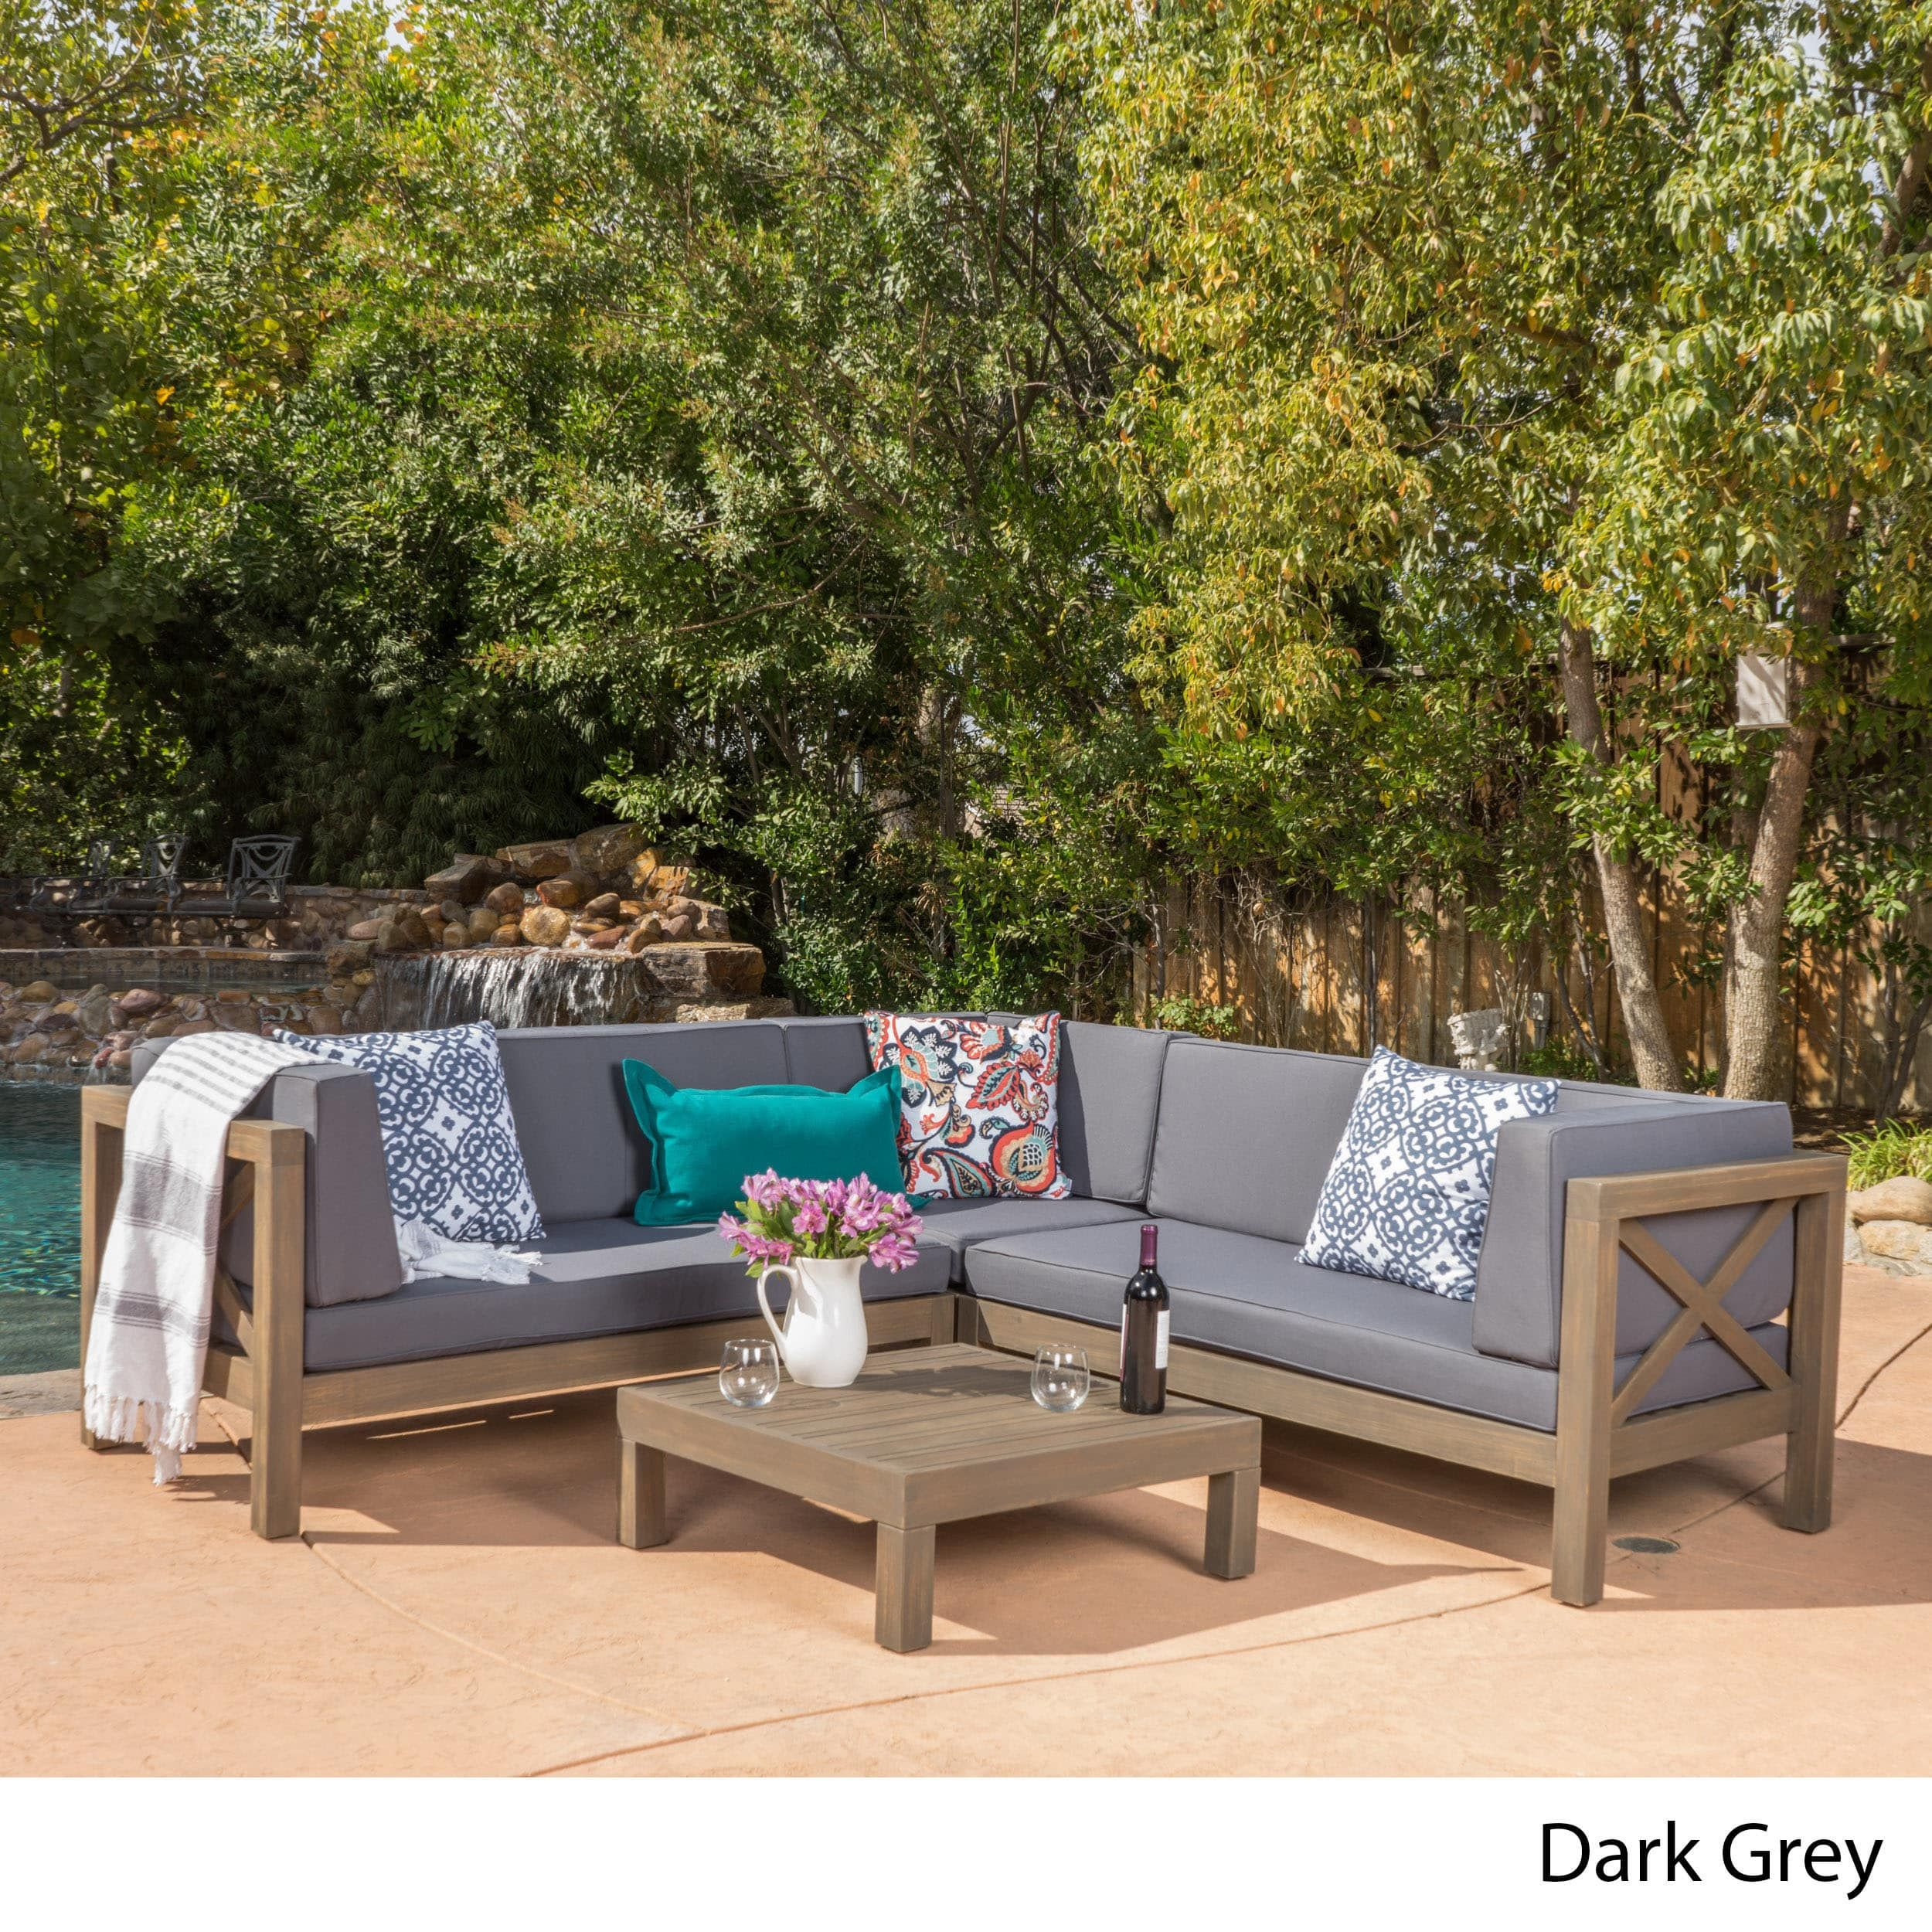 Brava Outdoor 4 Piece Wood Sectional Set W Cushions By Christopher Knight Home Dark Grey With Teak Finish Size Sets Patio Furniture